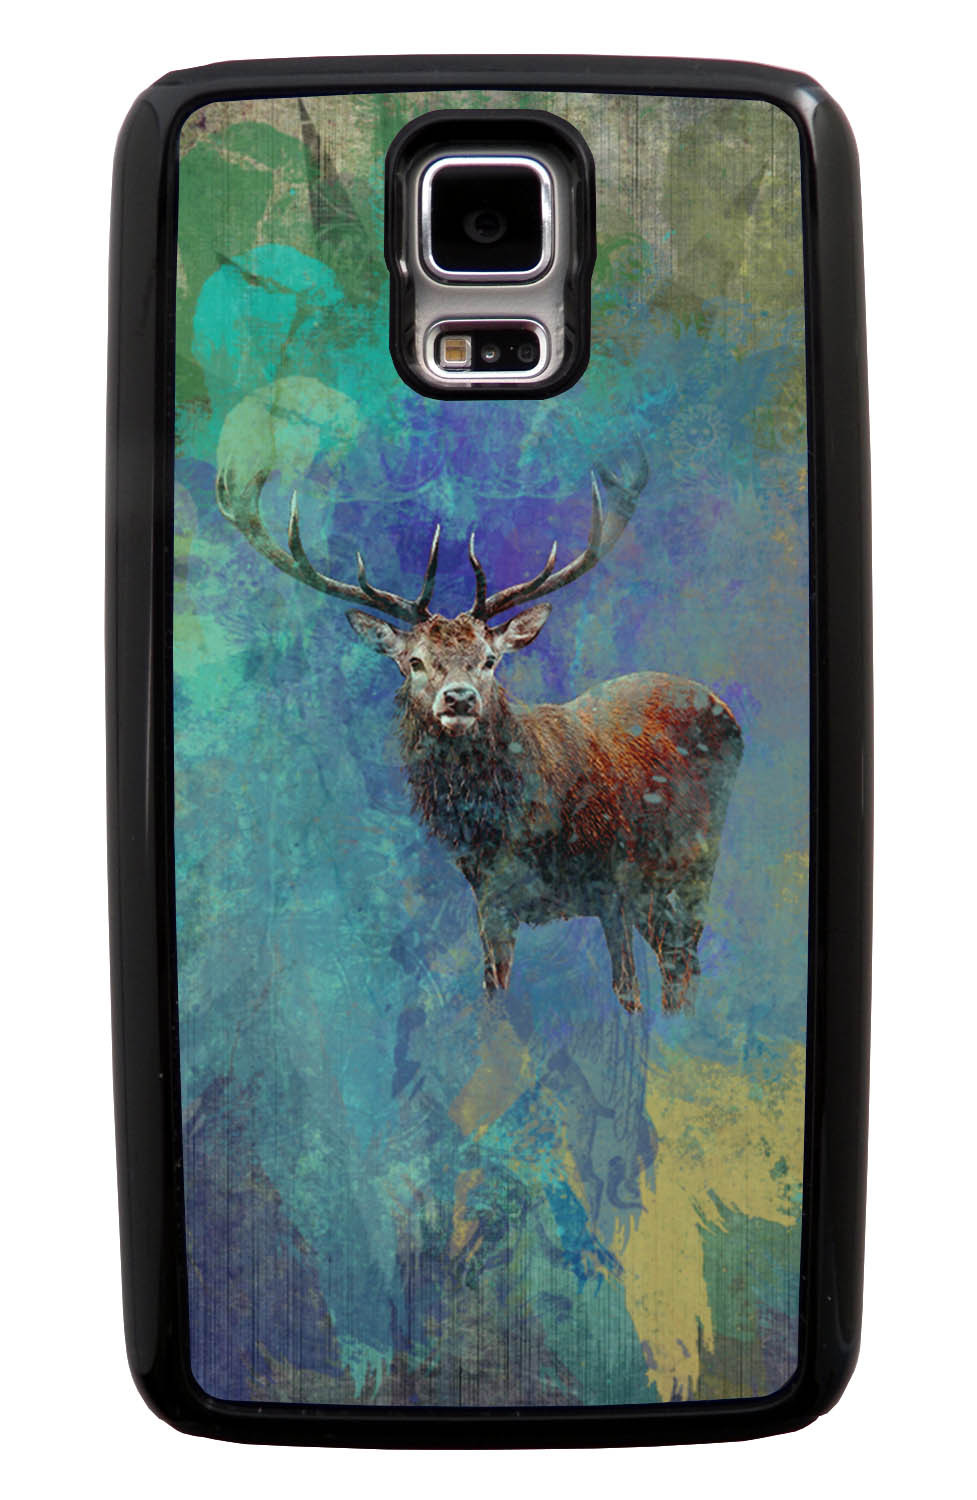 Samsung Galaxy S5 / SV Deer Case - Deer Posturing Photo on Paint Splatter Overlay - Picture - Black Tough Hybrid Case